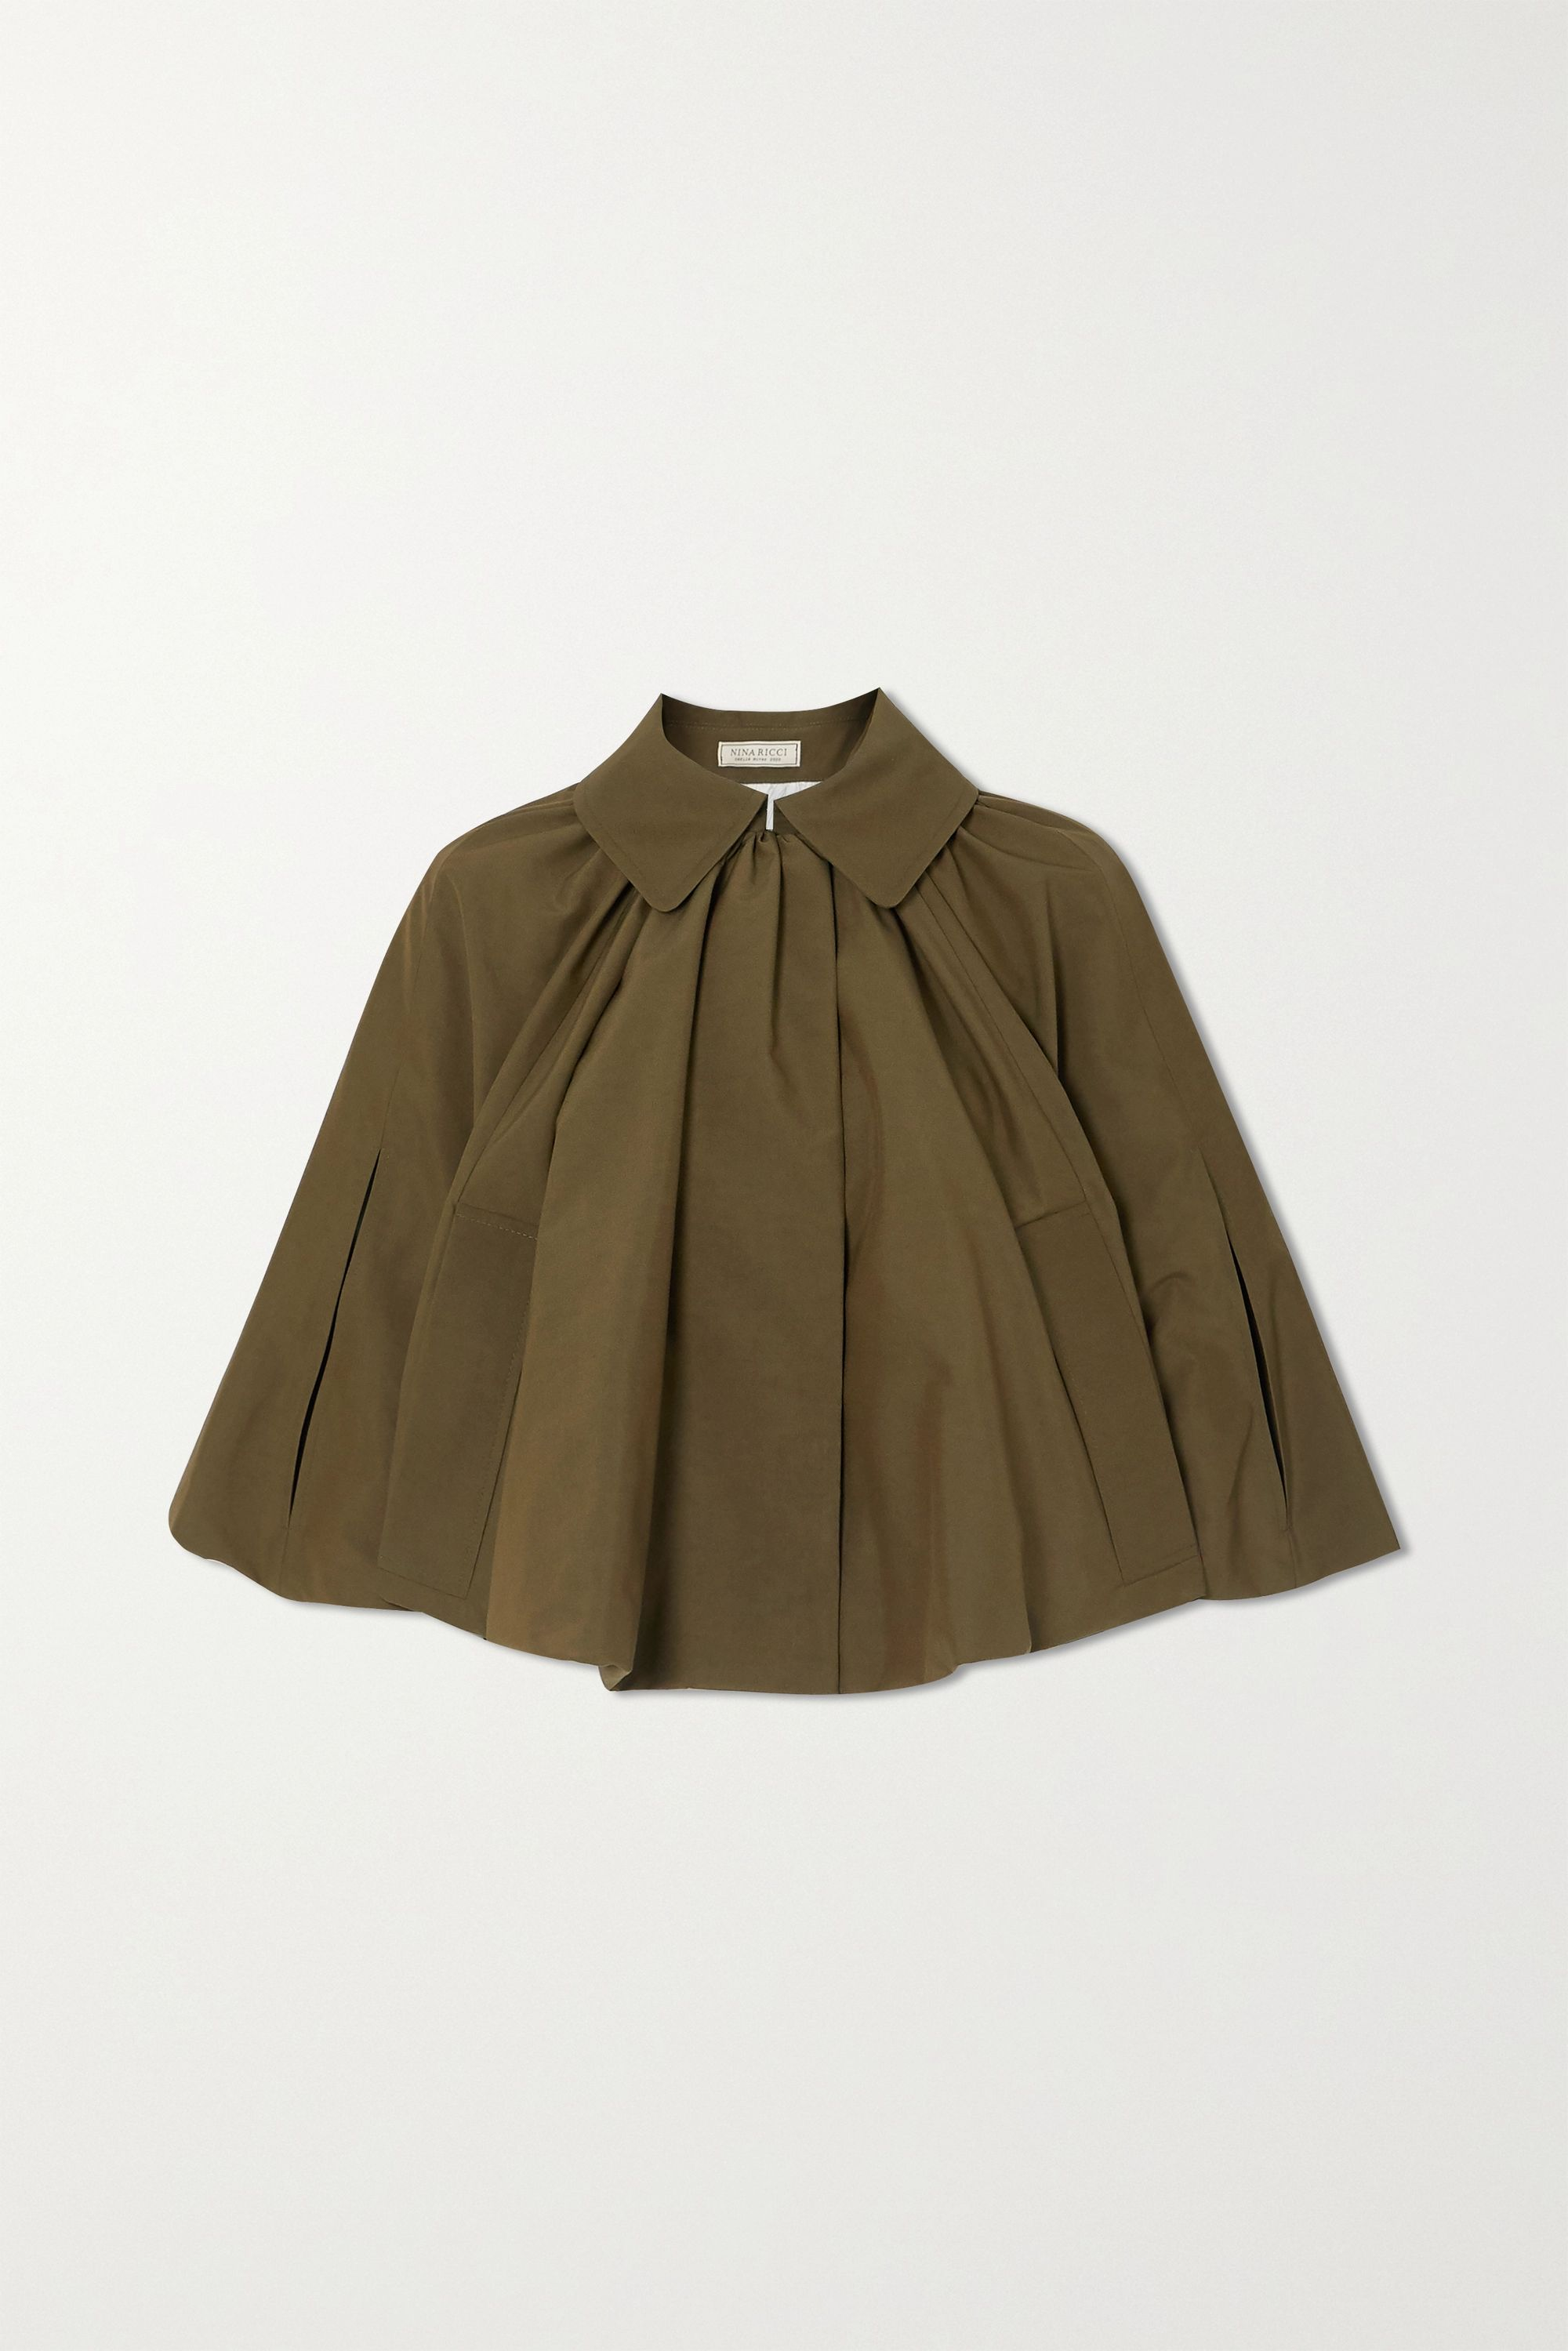 Nina Ricci Gathered faille cape